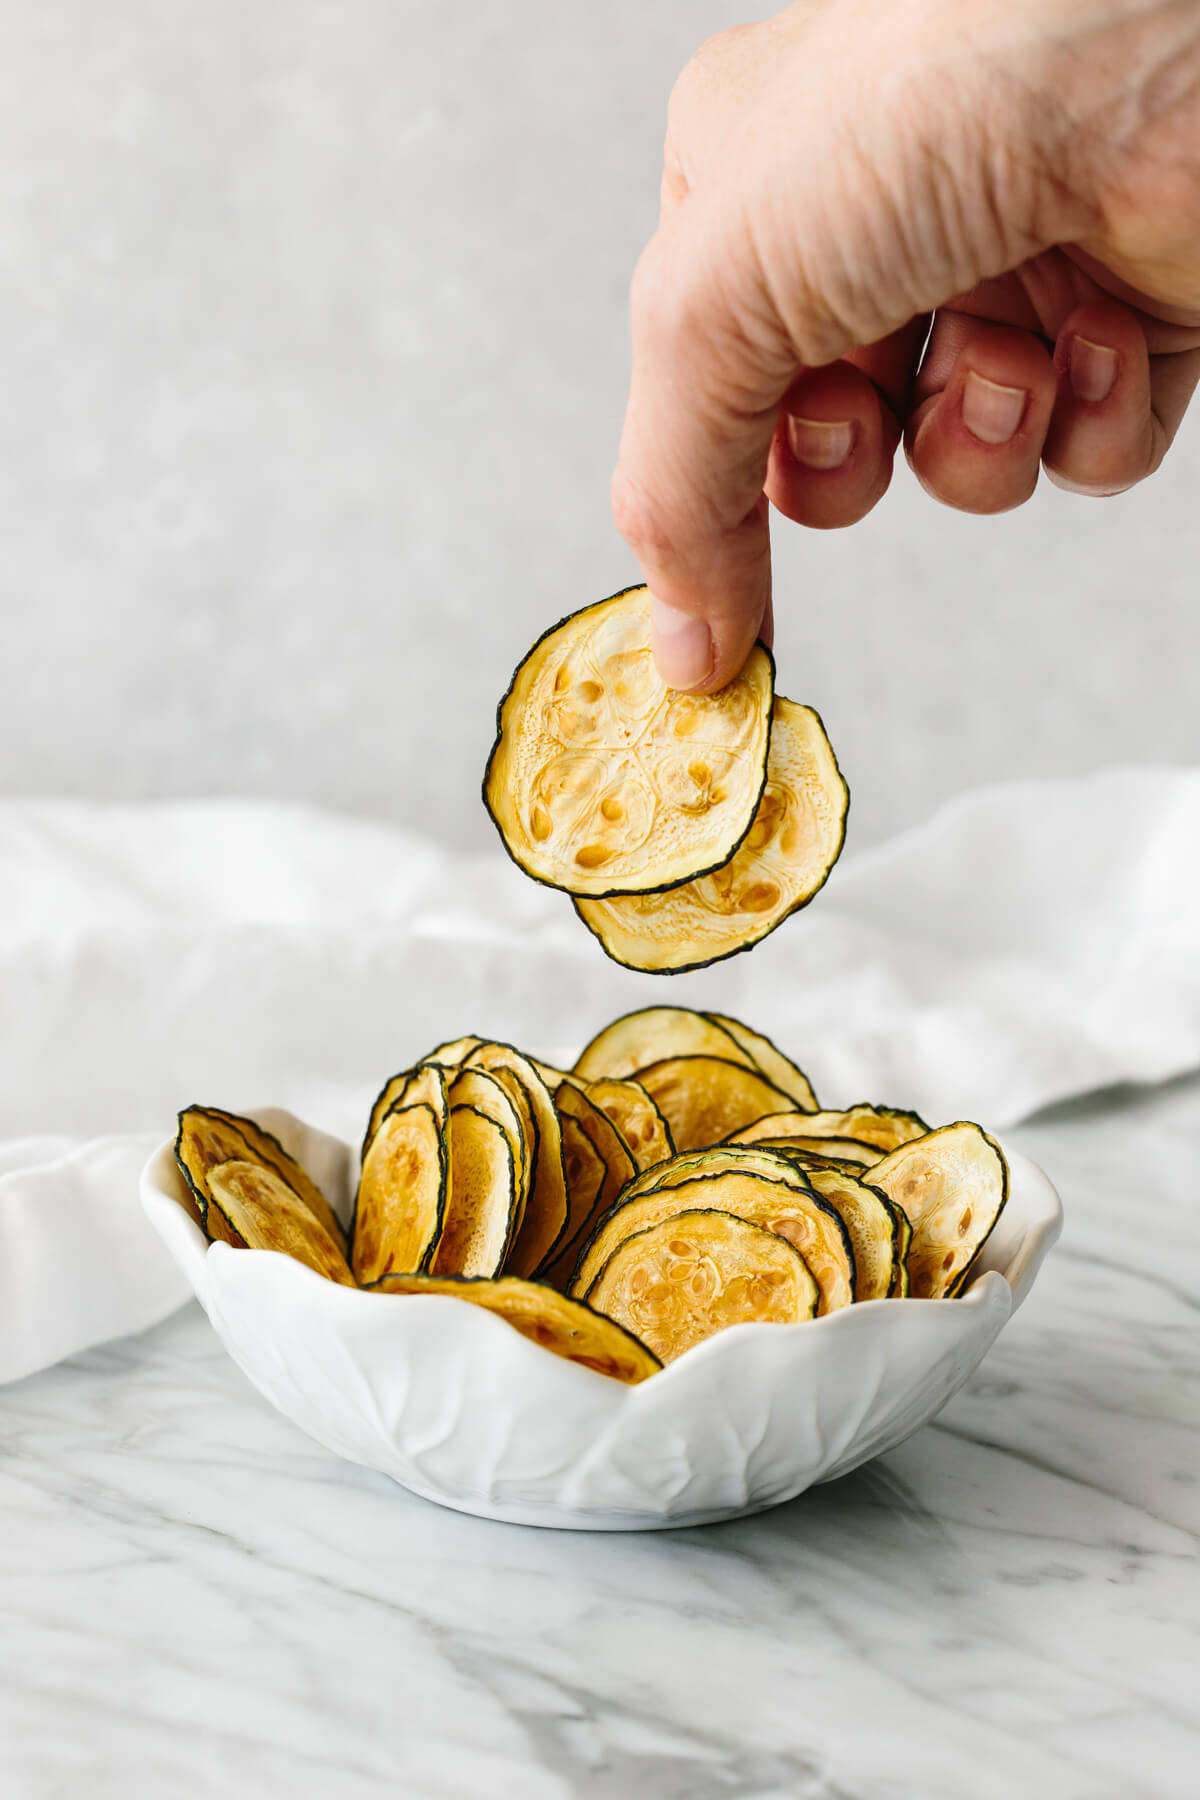 A hand picking up zucchini chips from a white bowl sitting on a table.